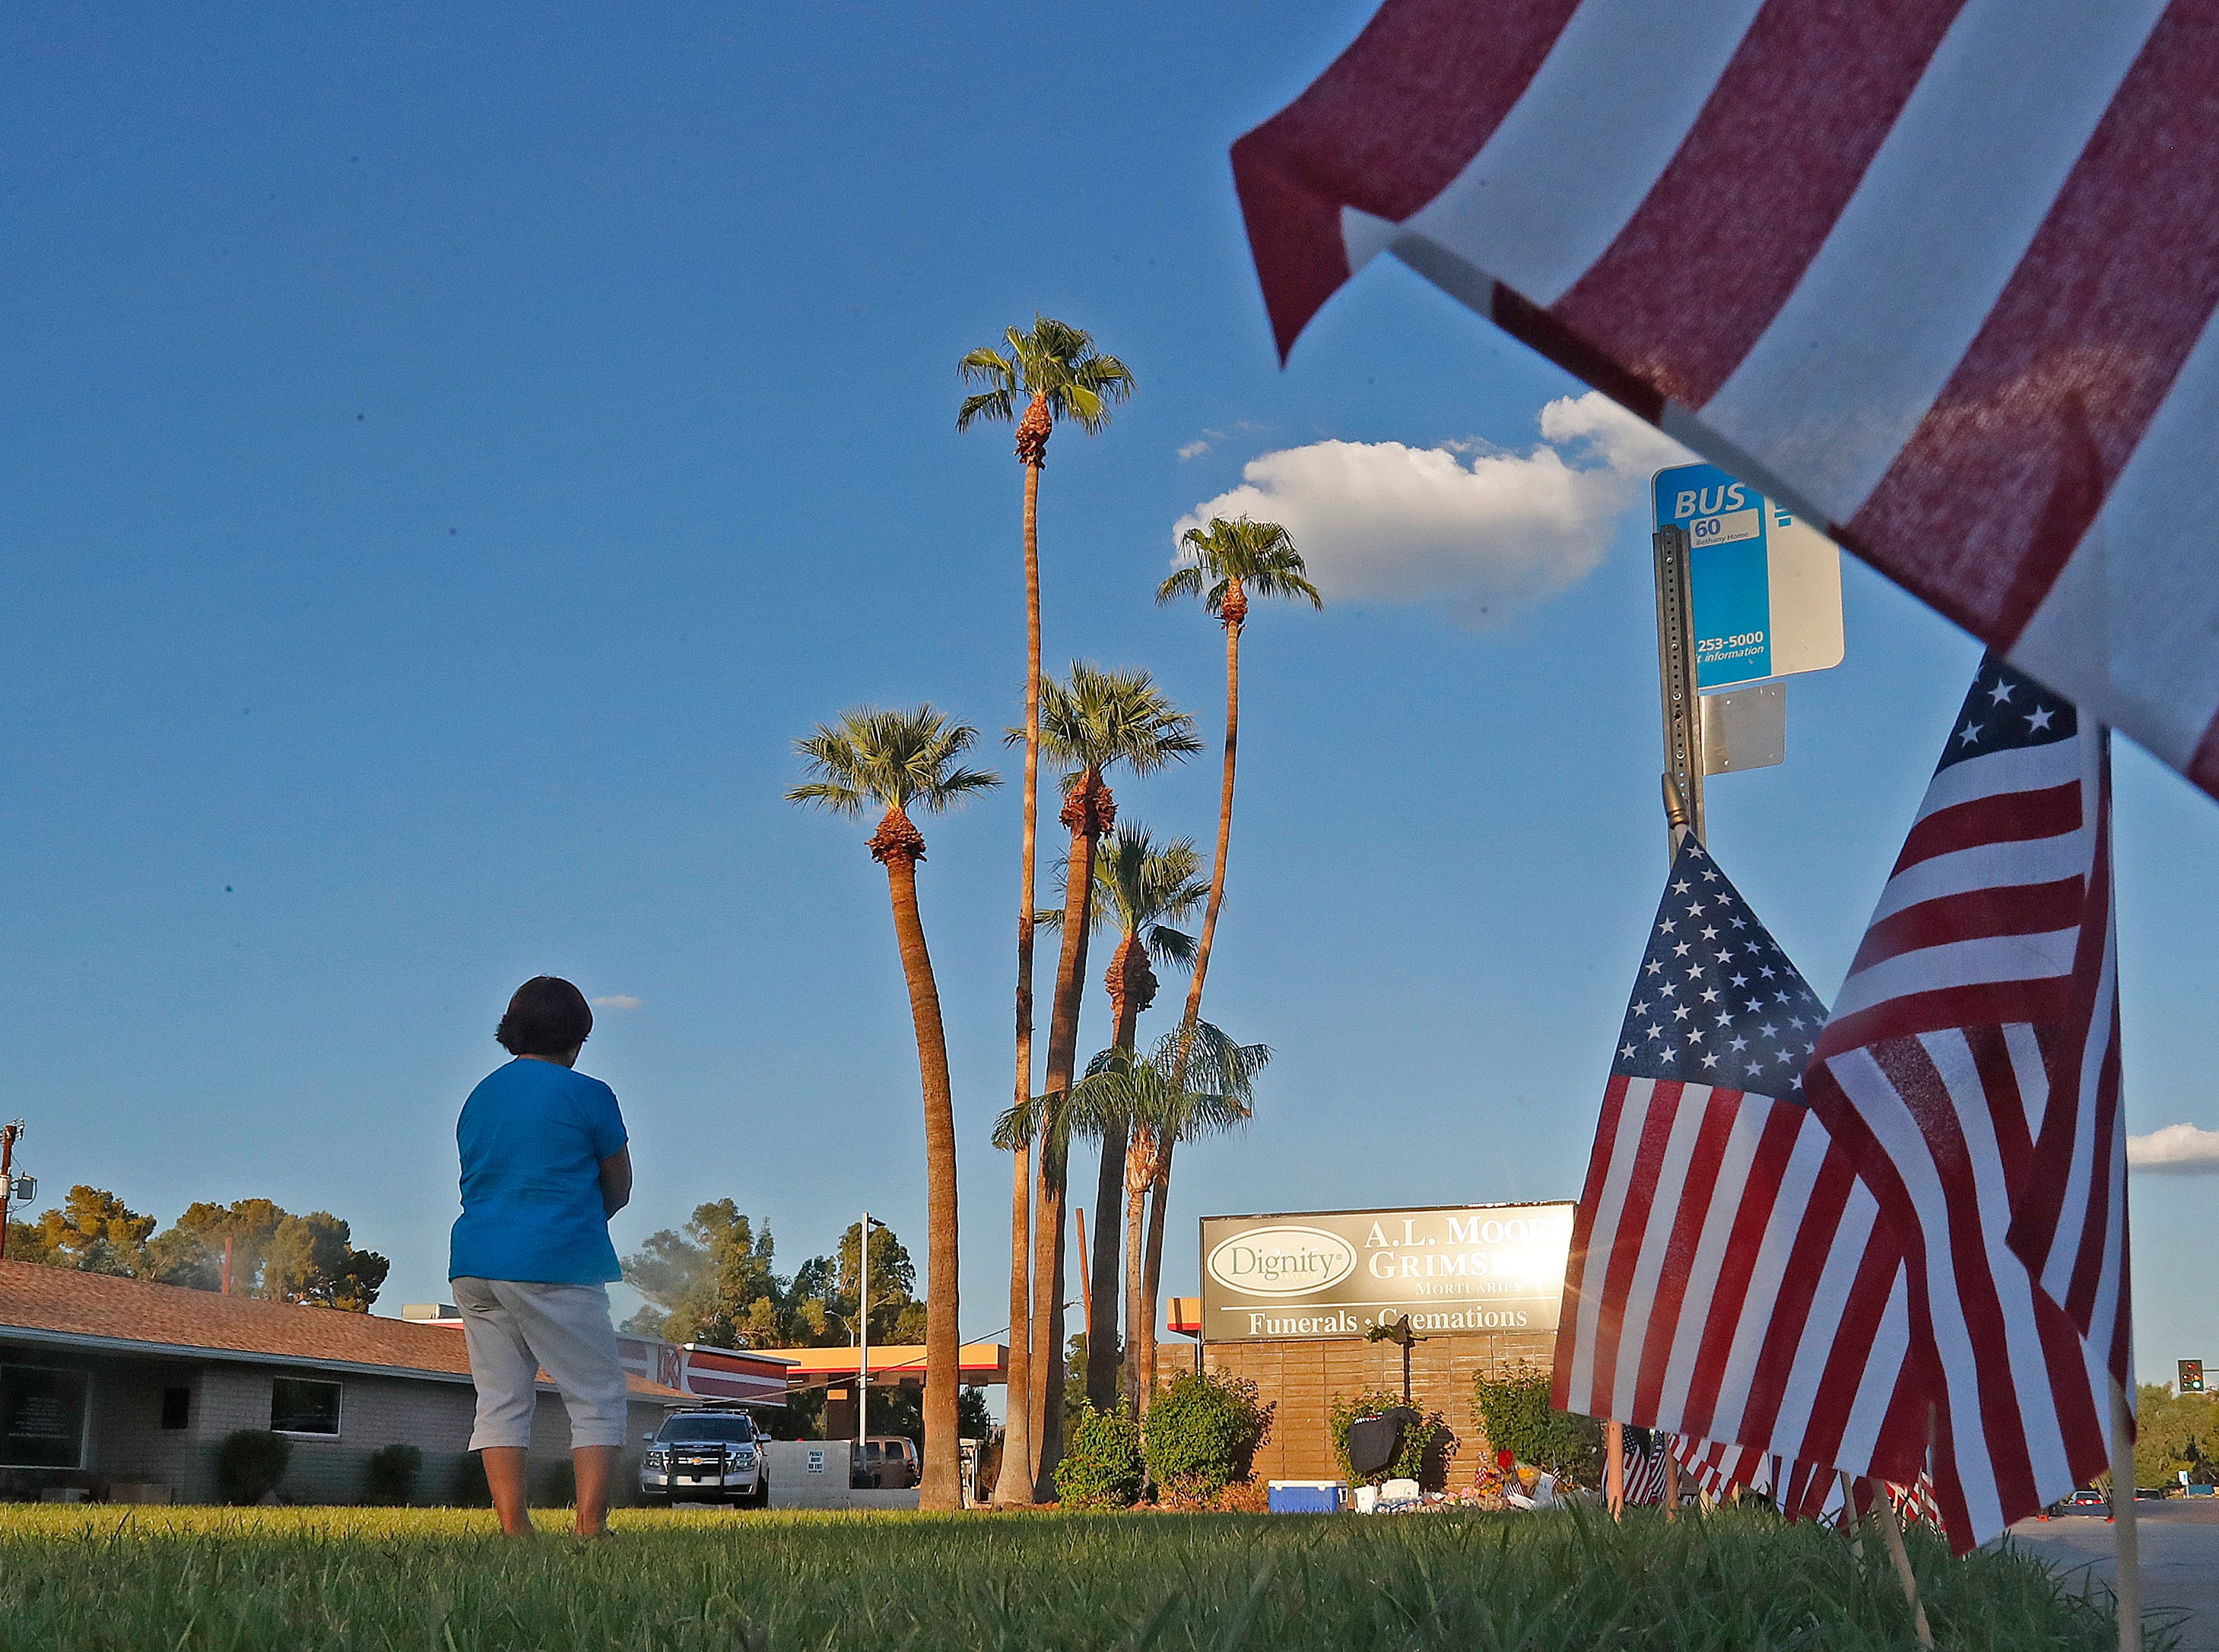 Maria Guzman looks at the growing memorial as flags line the sidewalks outside A.L. Moore-Grimshaw Mortuaries in Phoenix on Aug. 26, 2018.